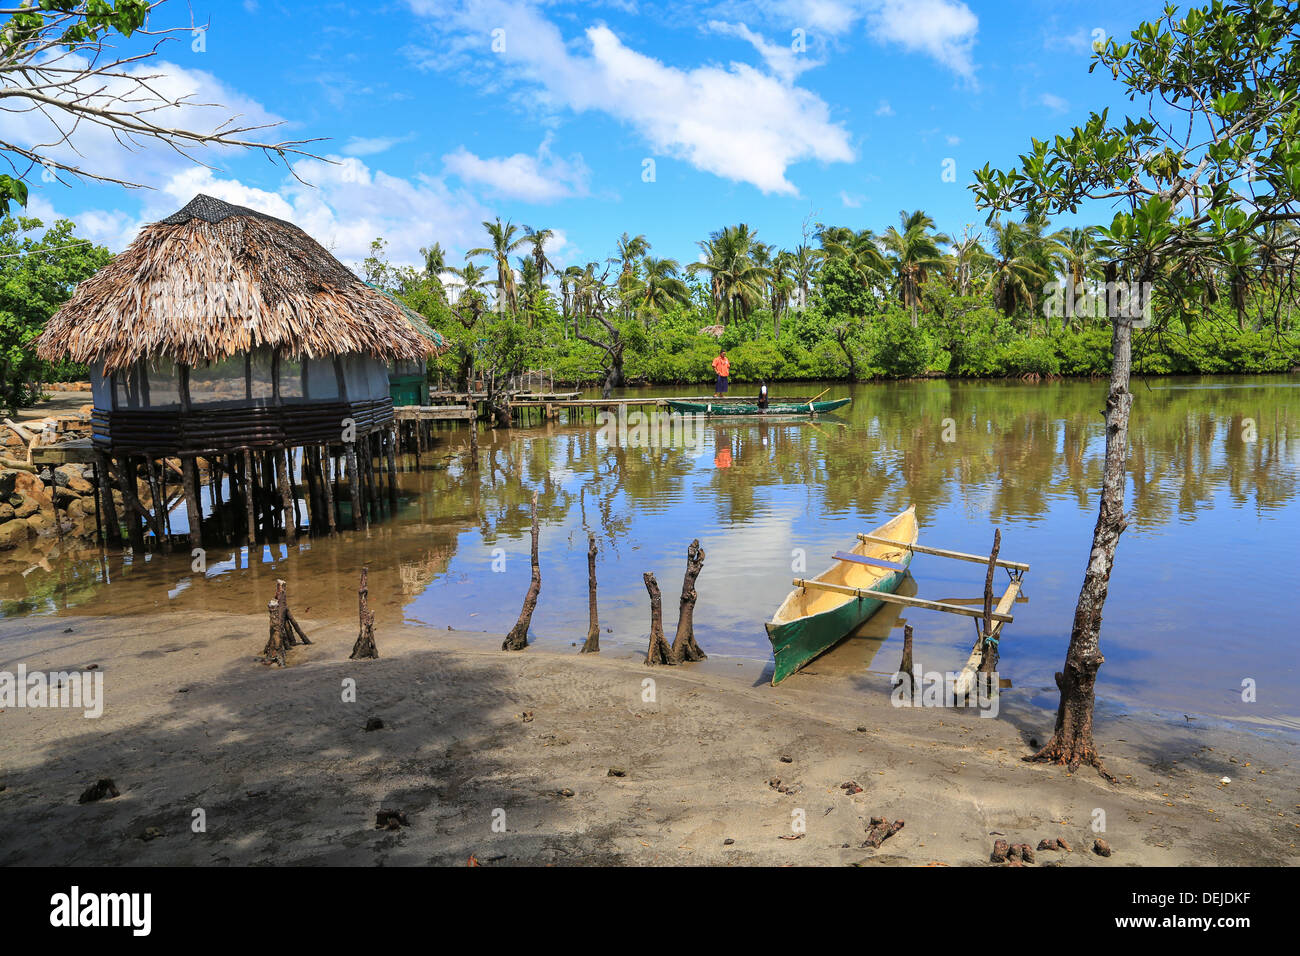 Outrigger canoe on mangrove slough outlet to Safata Bay, Samoa. - Stock Image